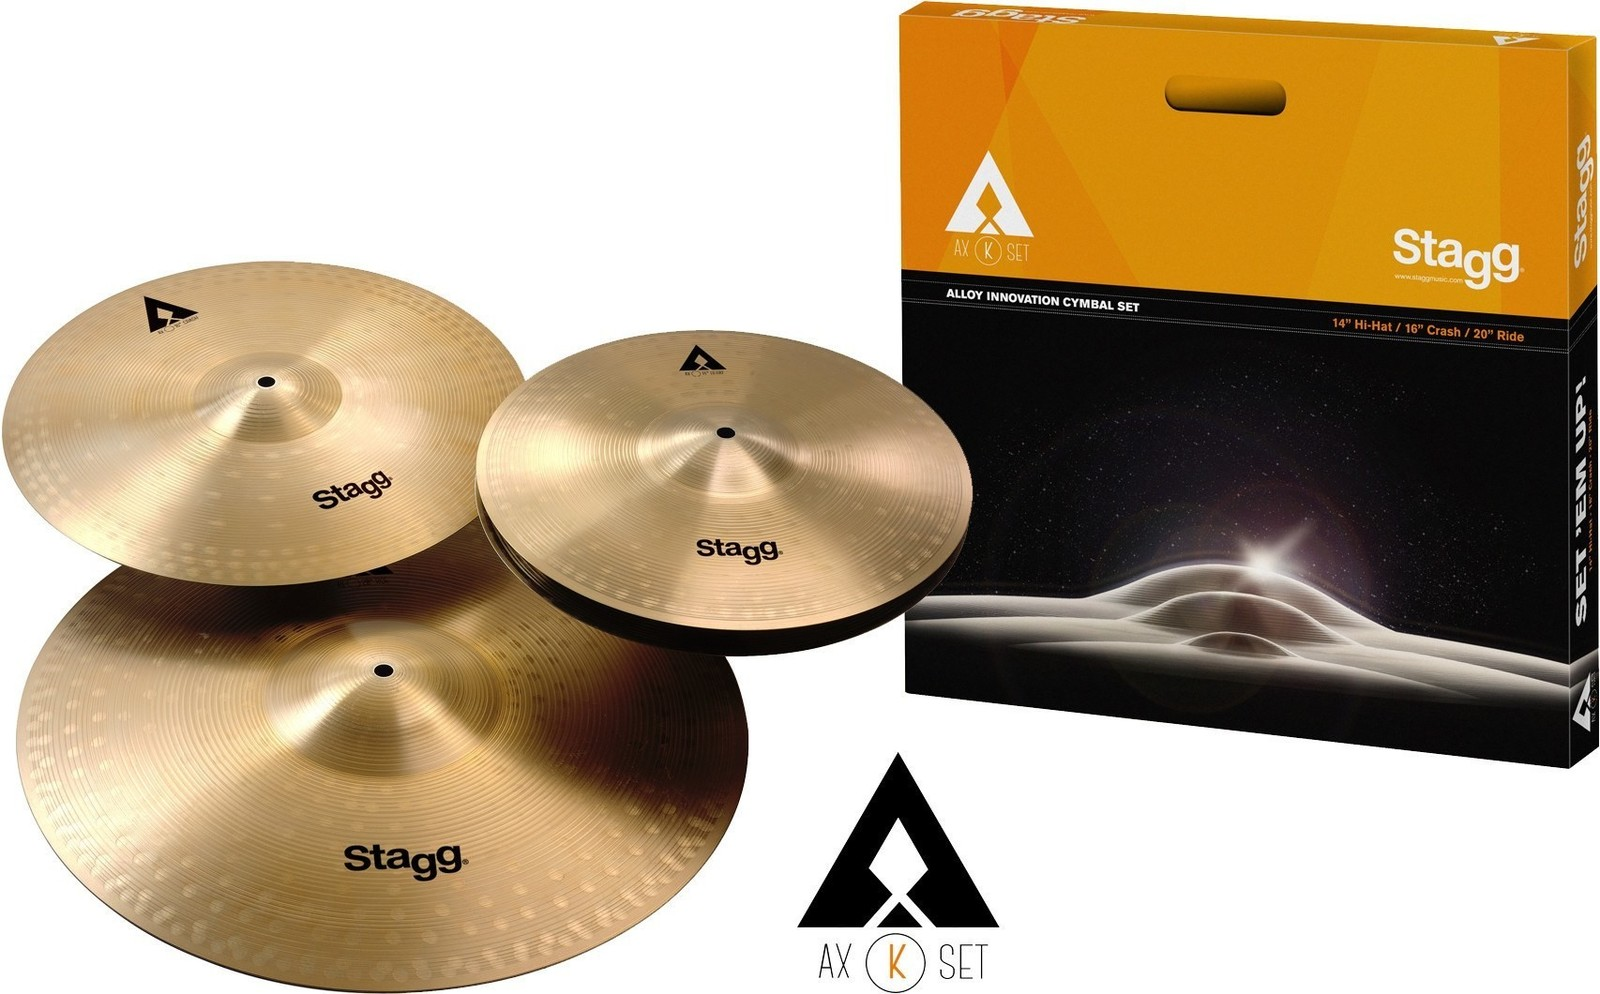 """Stagg AXK Copper Steel Cymbal Set HH14"""" CR 16"""" RD 20"""" image"""